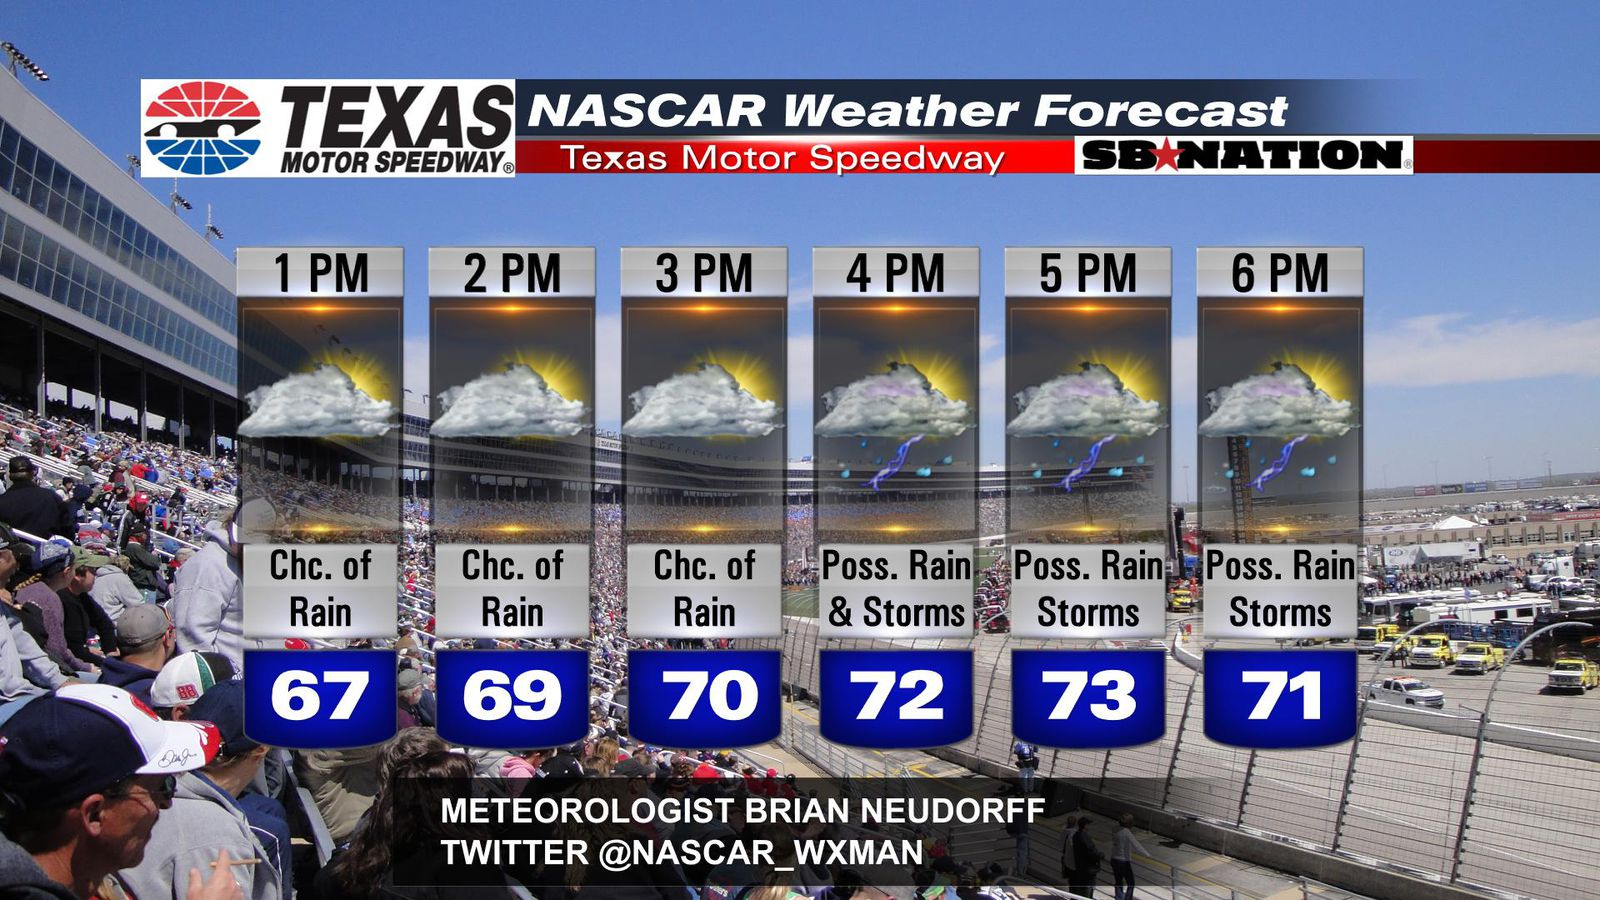 Race Day Weather Forecast For Nascar At Texas Motor